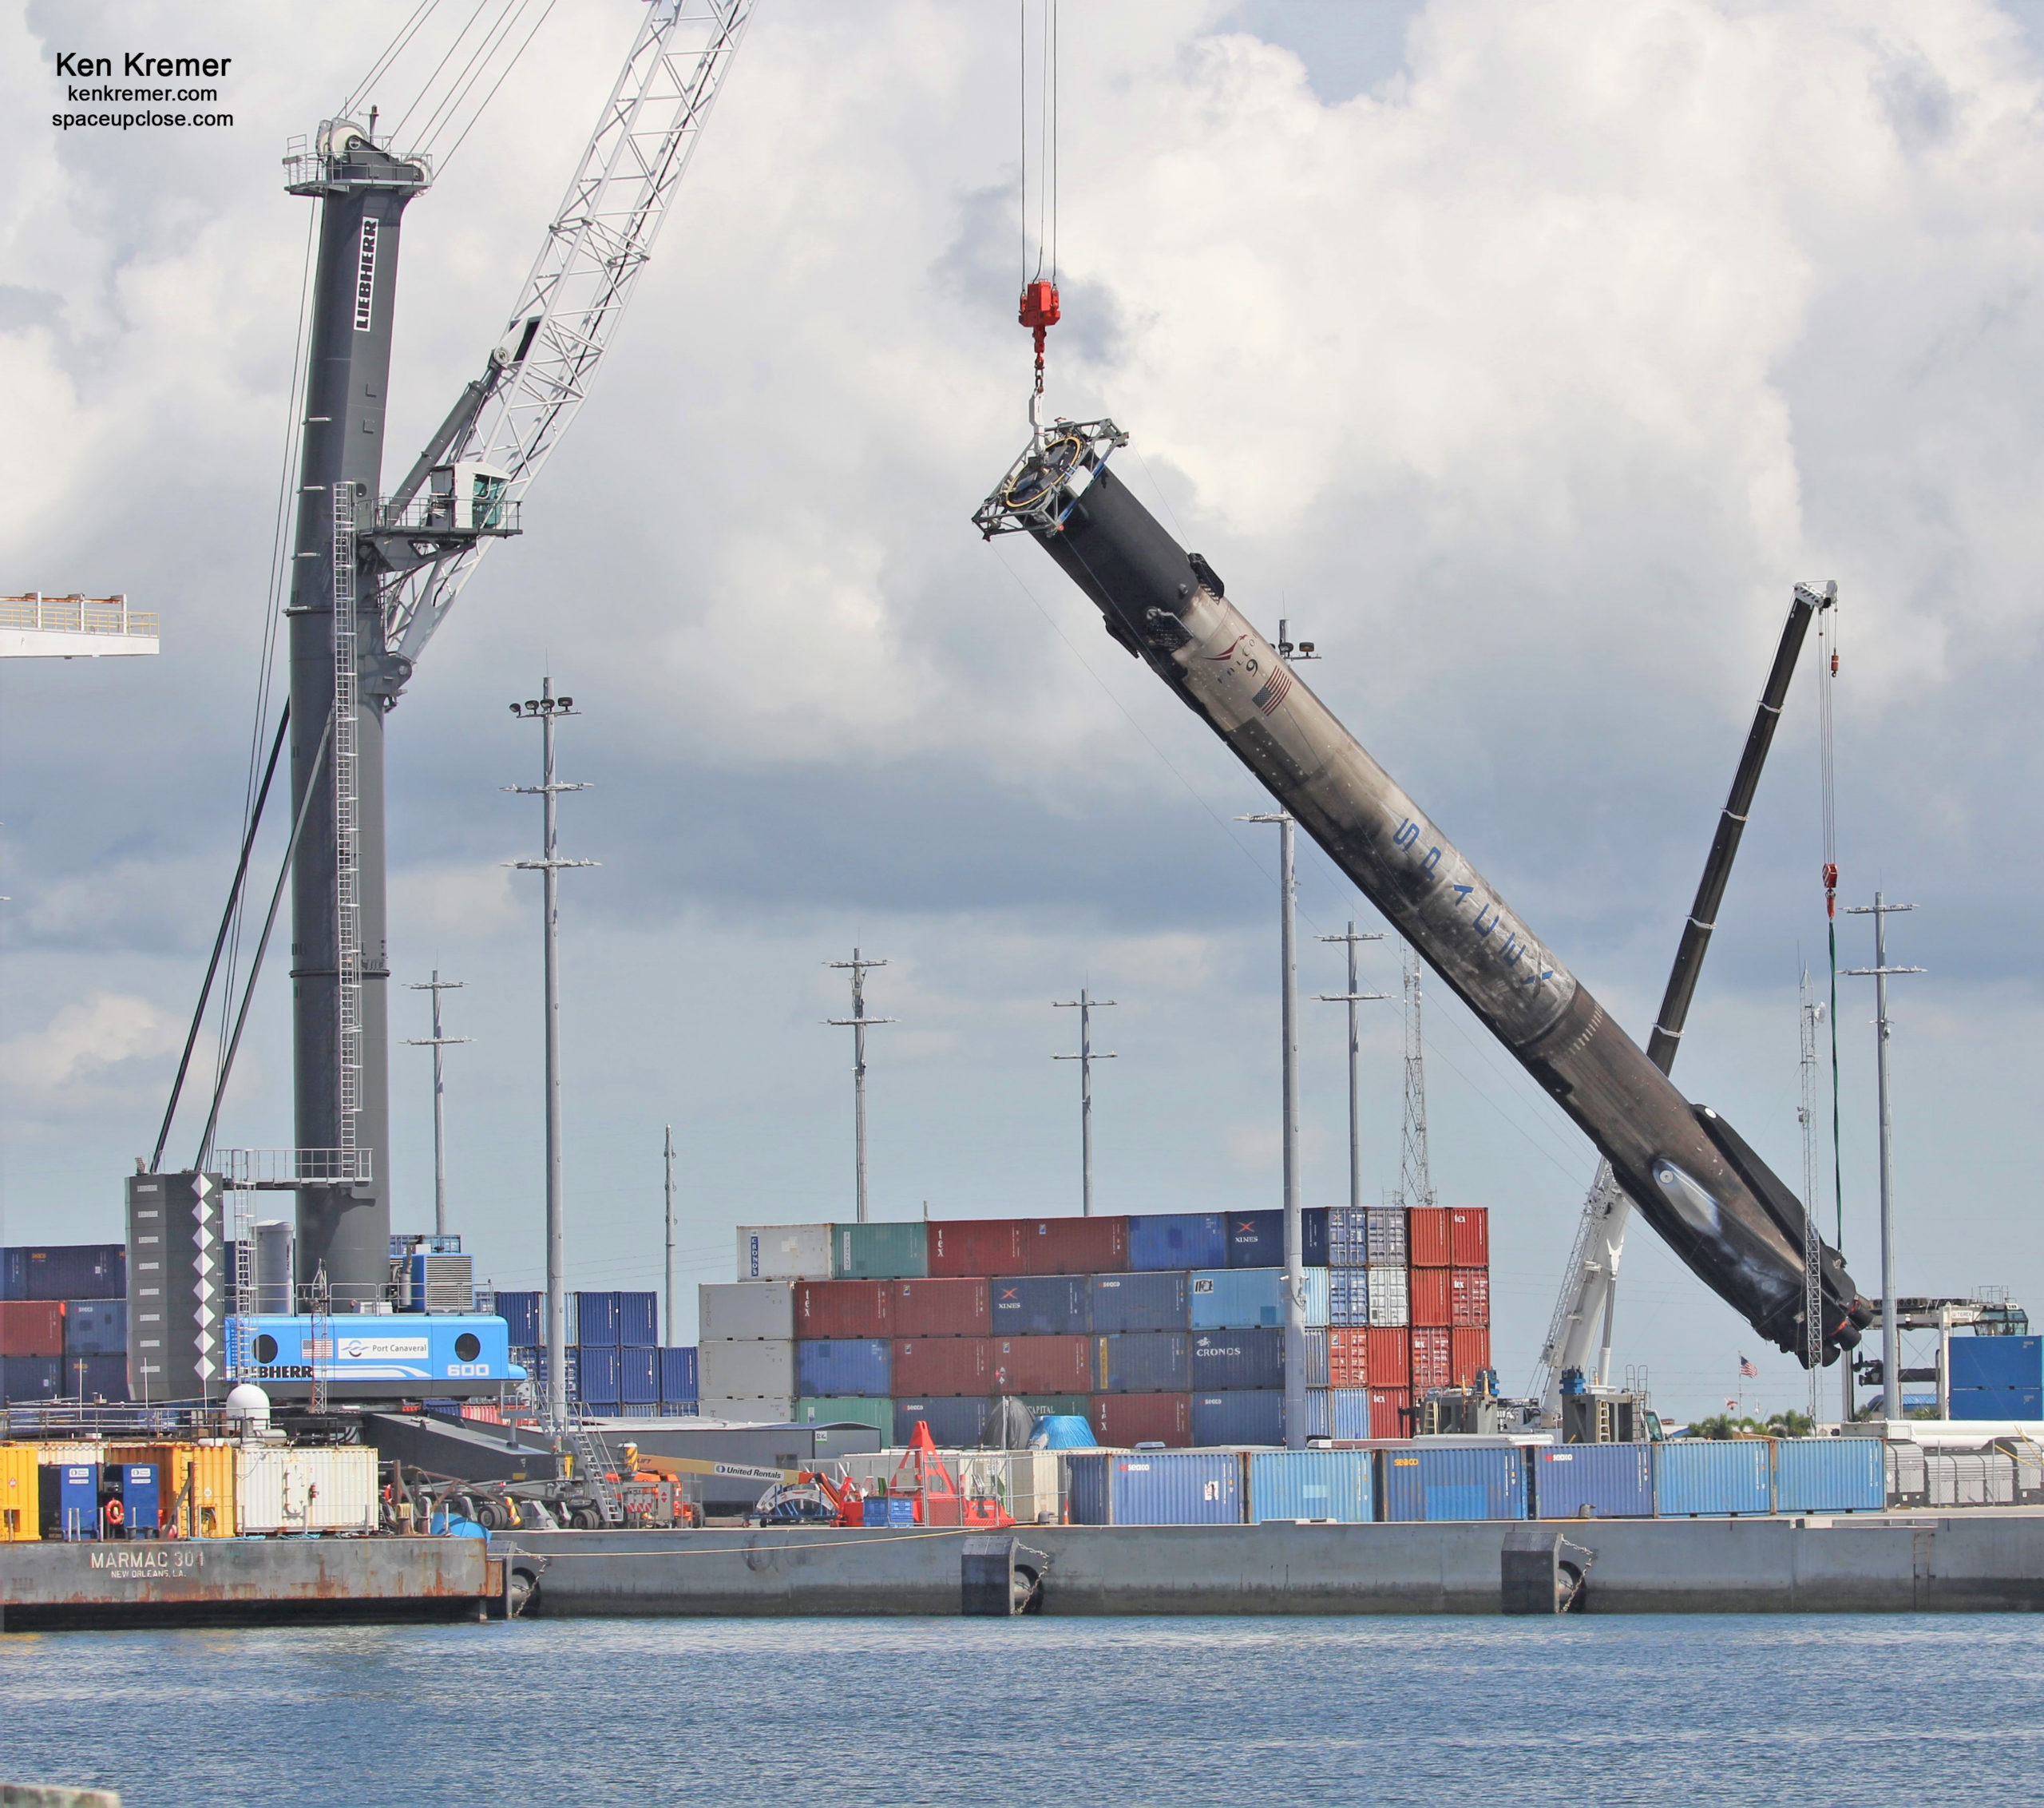 5x Flown Falcon 9 Booster Tilted Horizontal after All Legs Retracted for Transport Back to Cape: Photos